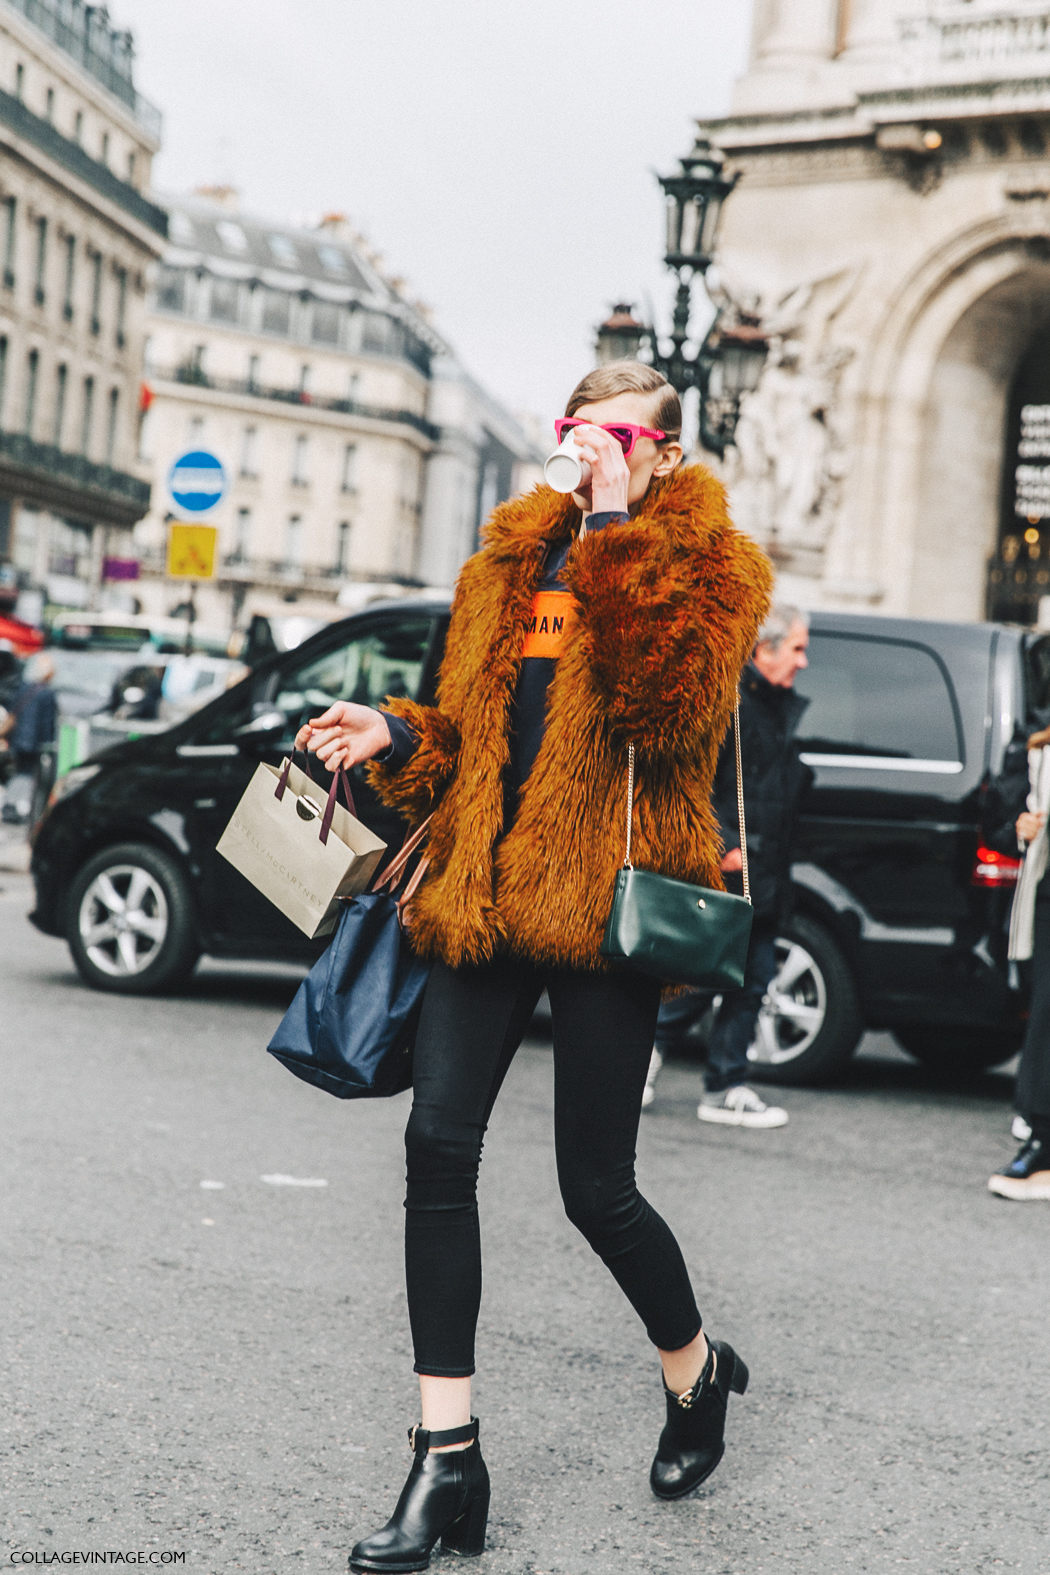 PFW-Paris_Fashion_Week_Fall_2016-Street_Style-Collage_Vintage-Stella_McCartney-Model-Fur_Coat-